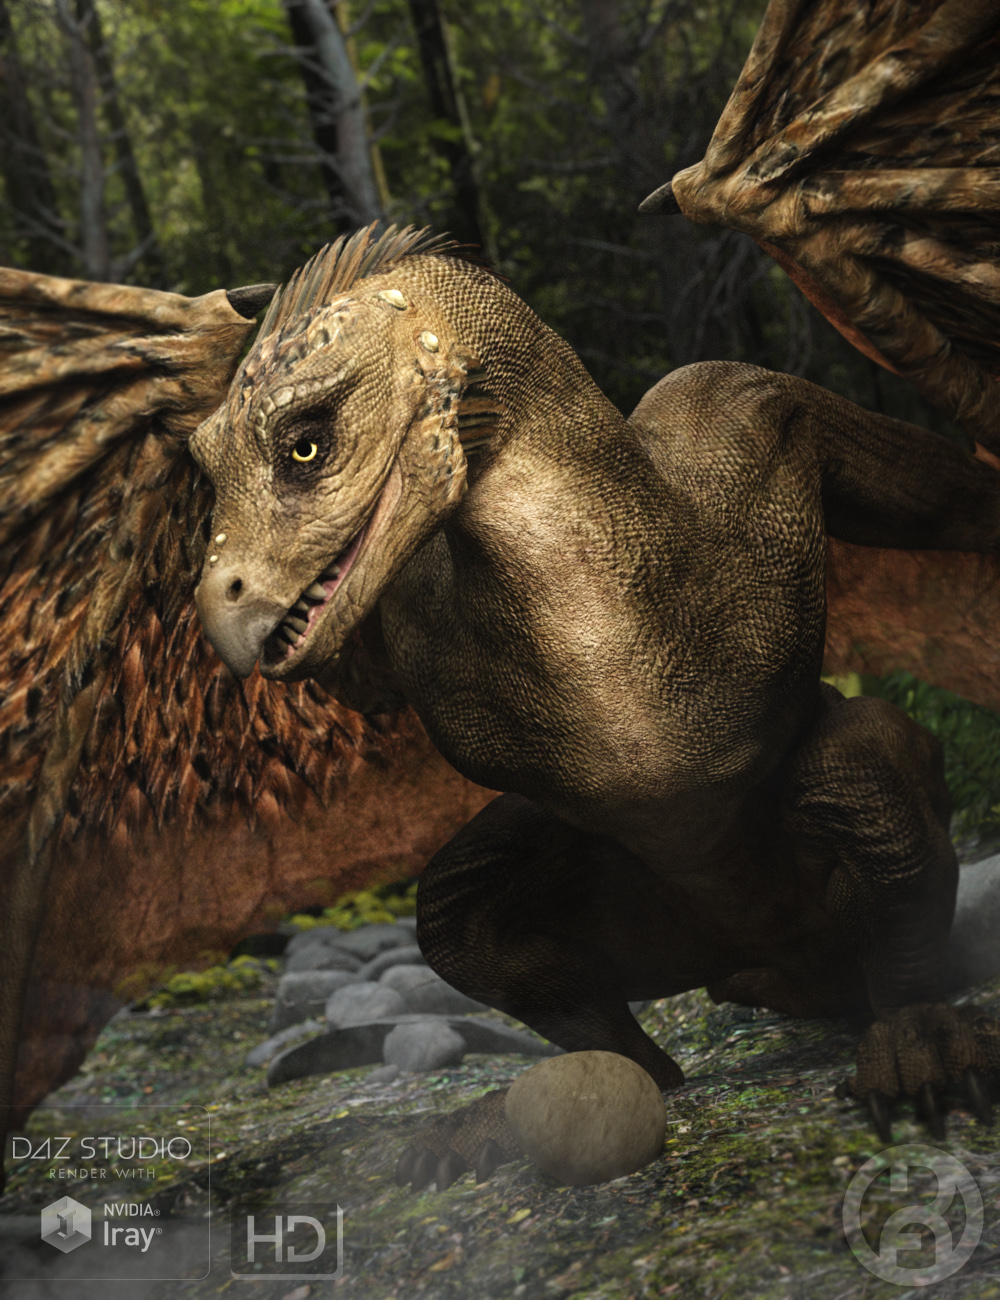 Raptor – The Feathered Dragon HD by: RawArt, 3D Models by Daz 3D